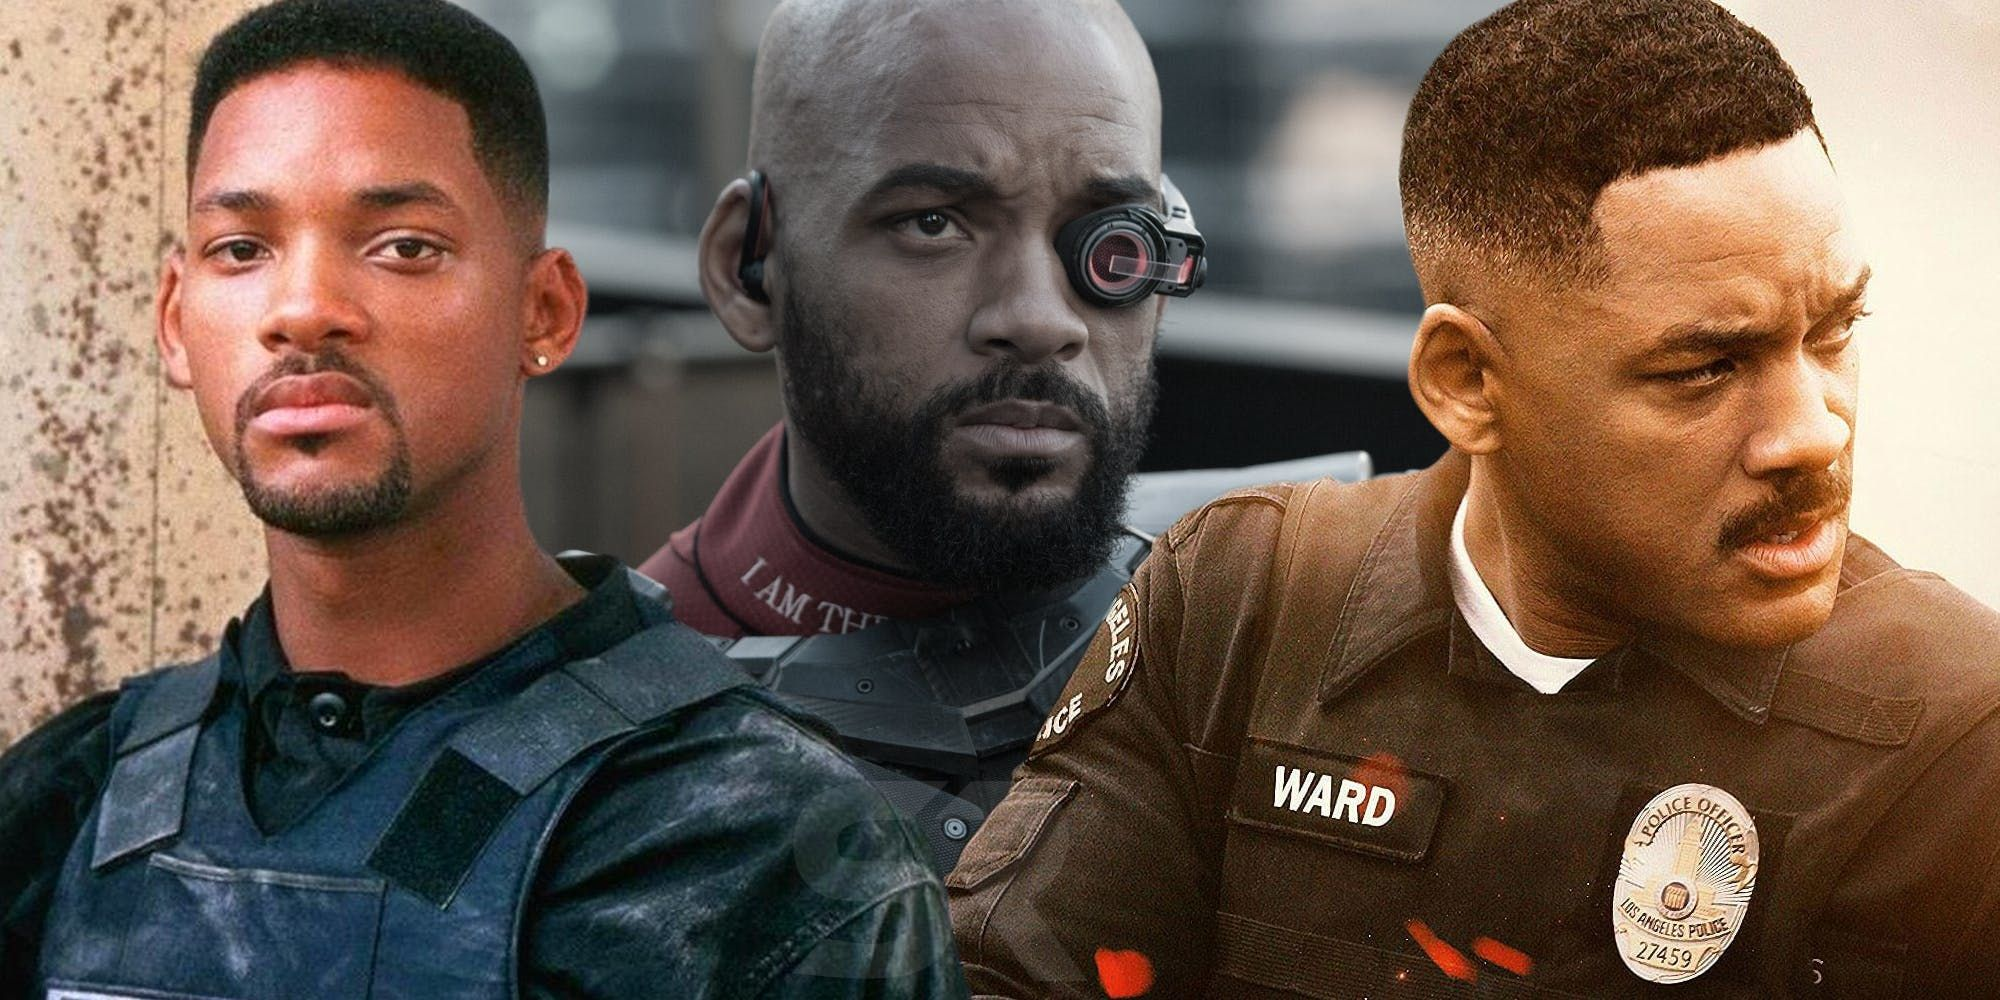 #SuicideSquad2 is delayed, so Will Smith will film Bad Boys 3 & Bright 2 first https://t.co/rxCDbN7TXt https://t.co/jaZU6neEuU